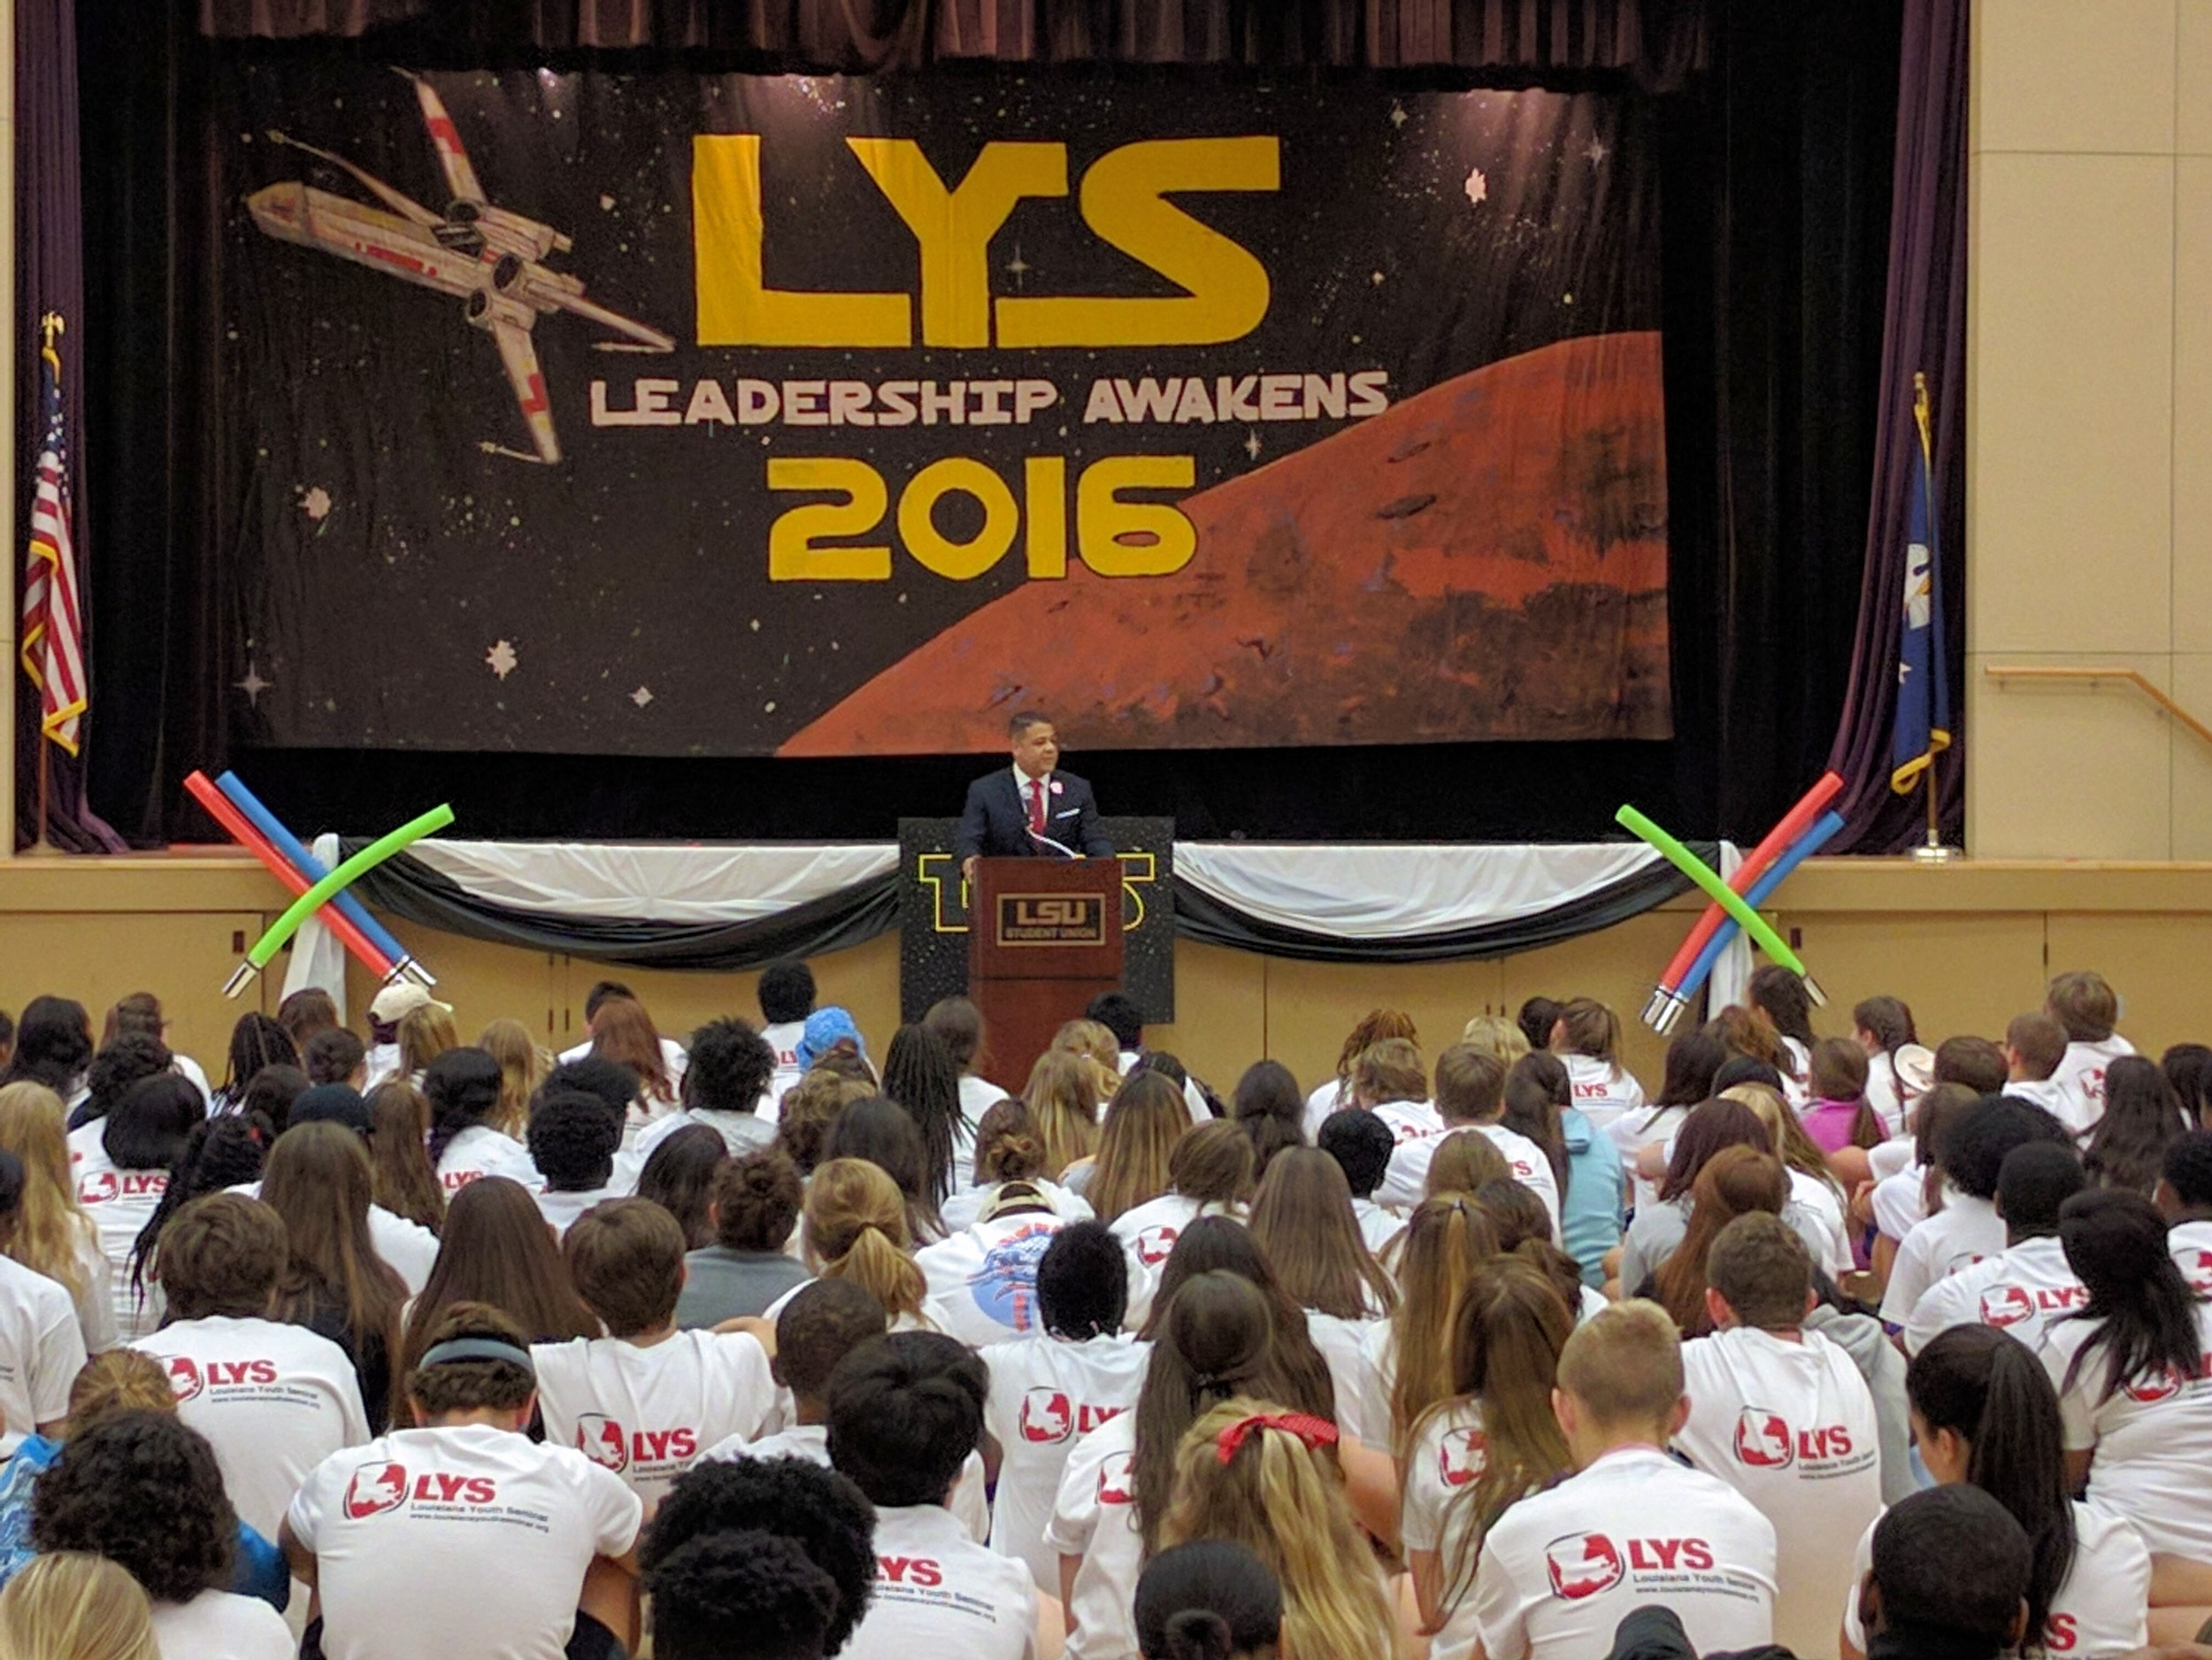 """""""I see the world differently because I attended Louisiana Youth Seminar"""" - Don Cravins, Jr."""